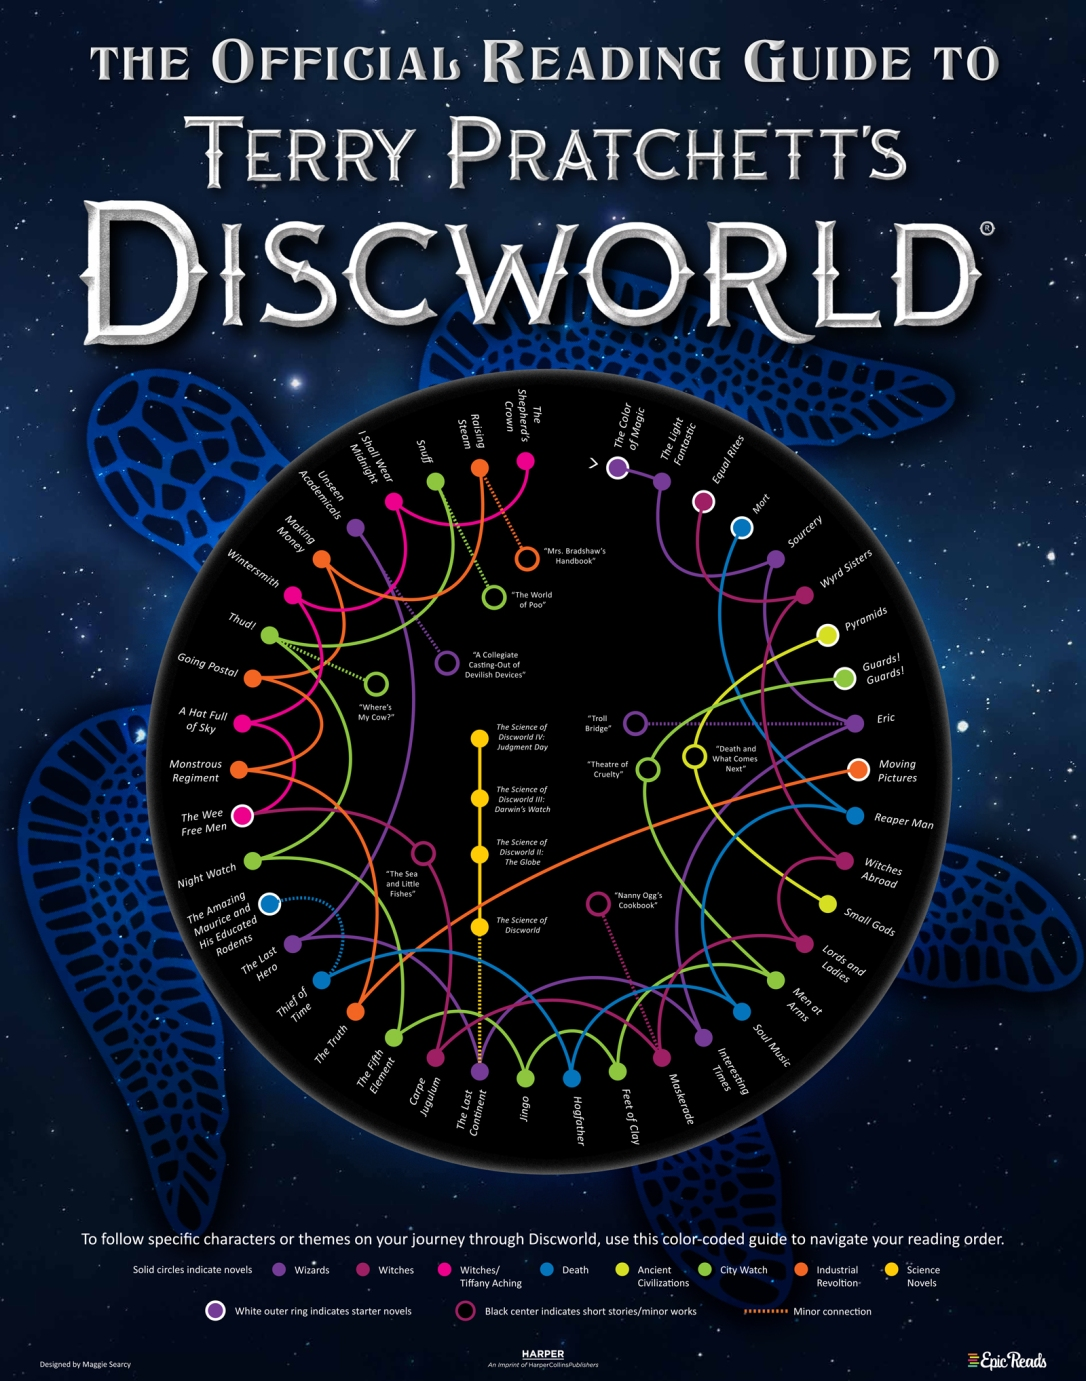 Discworld-ReadingGuide-Infographic.jpg